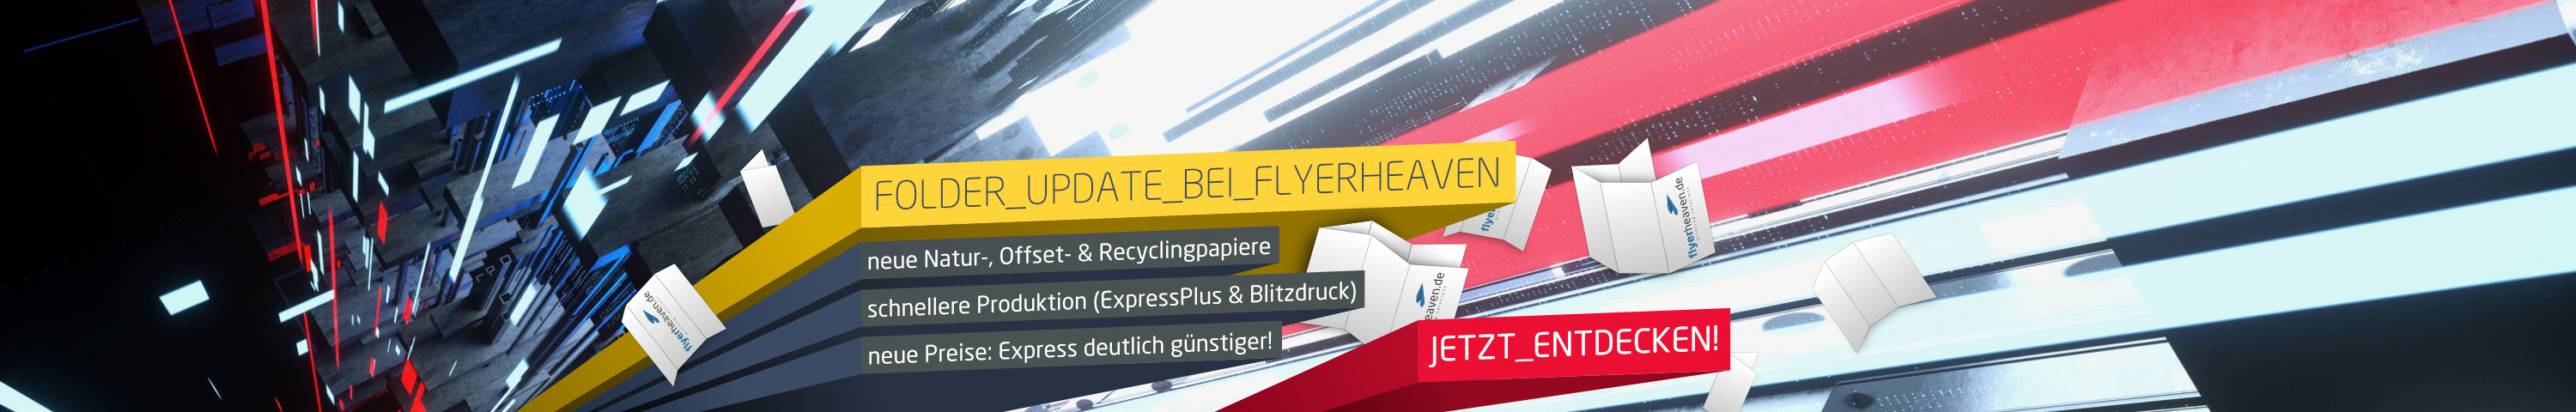 Folder-Update bei Flyerheaven